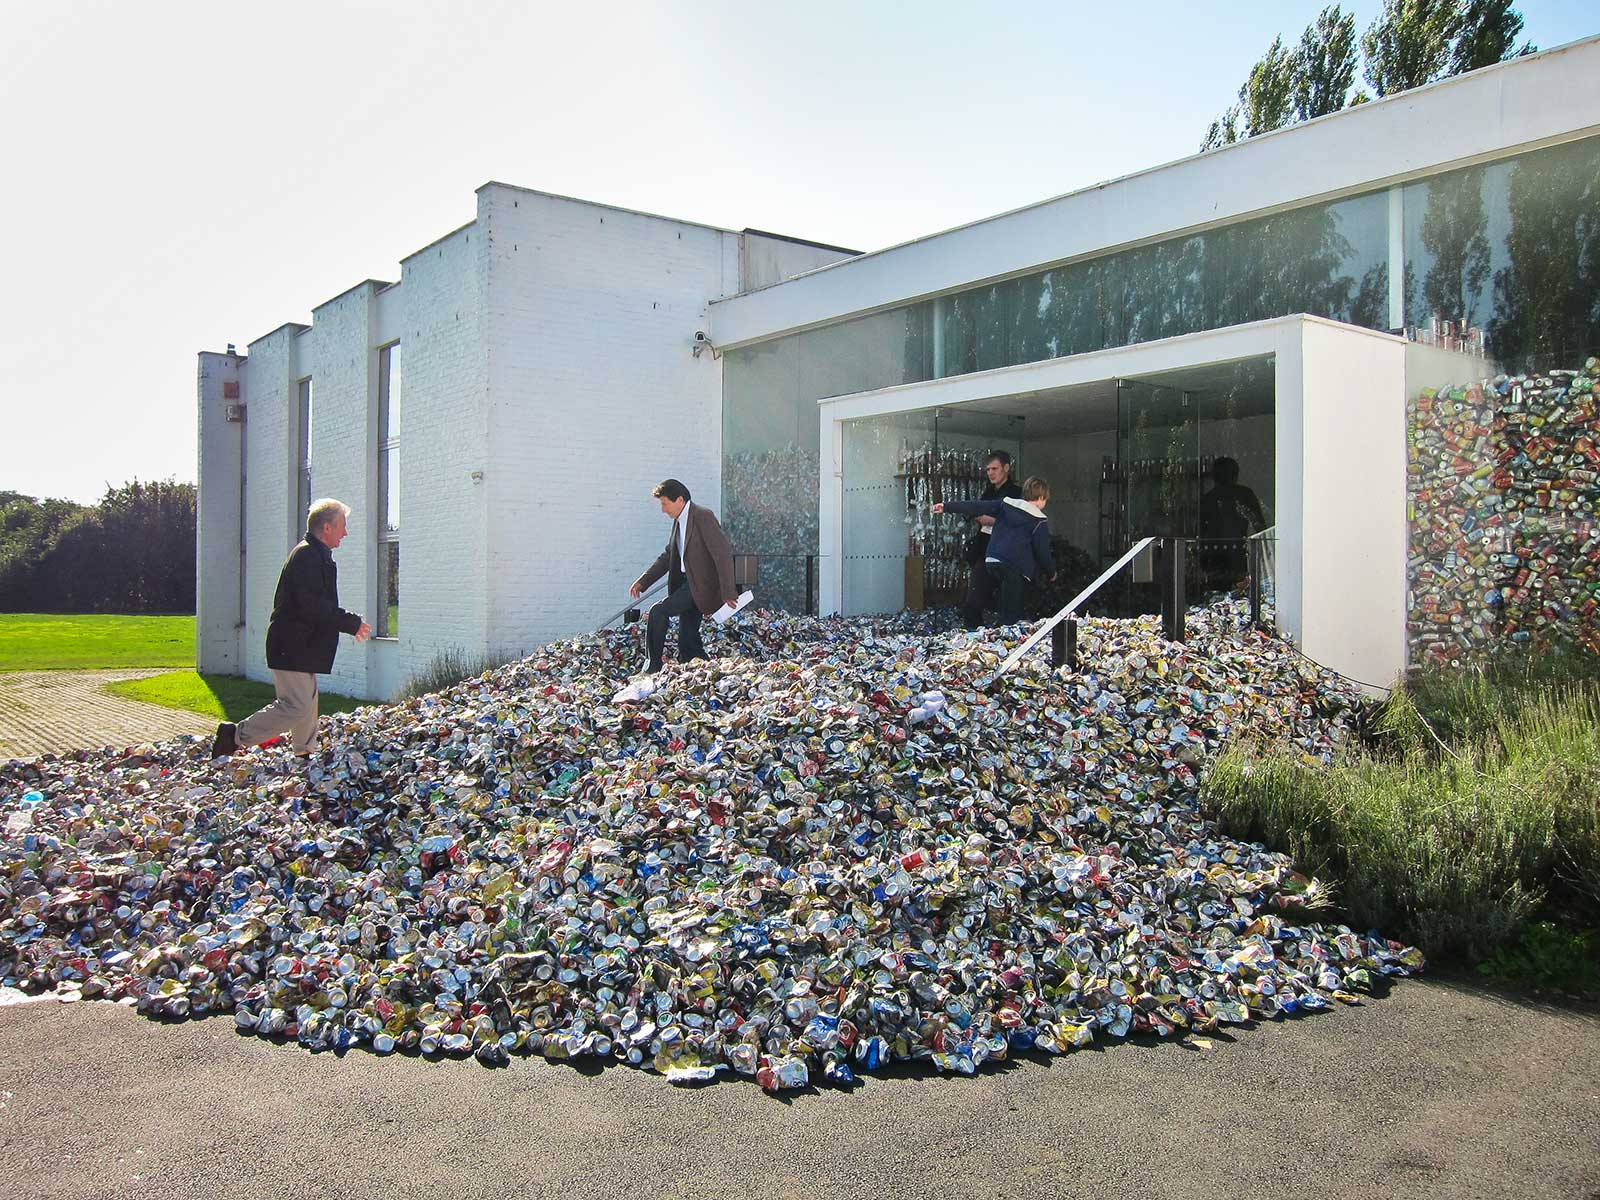 deluge of aluminum cans